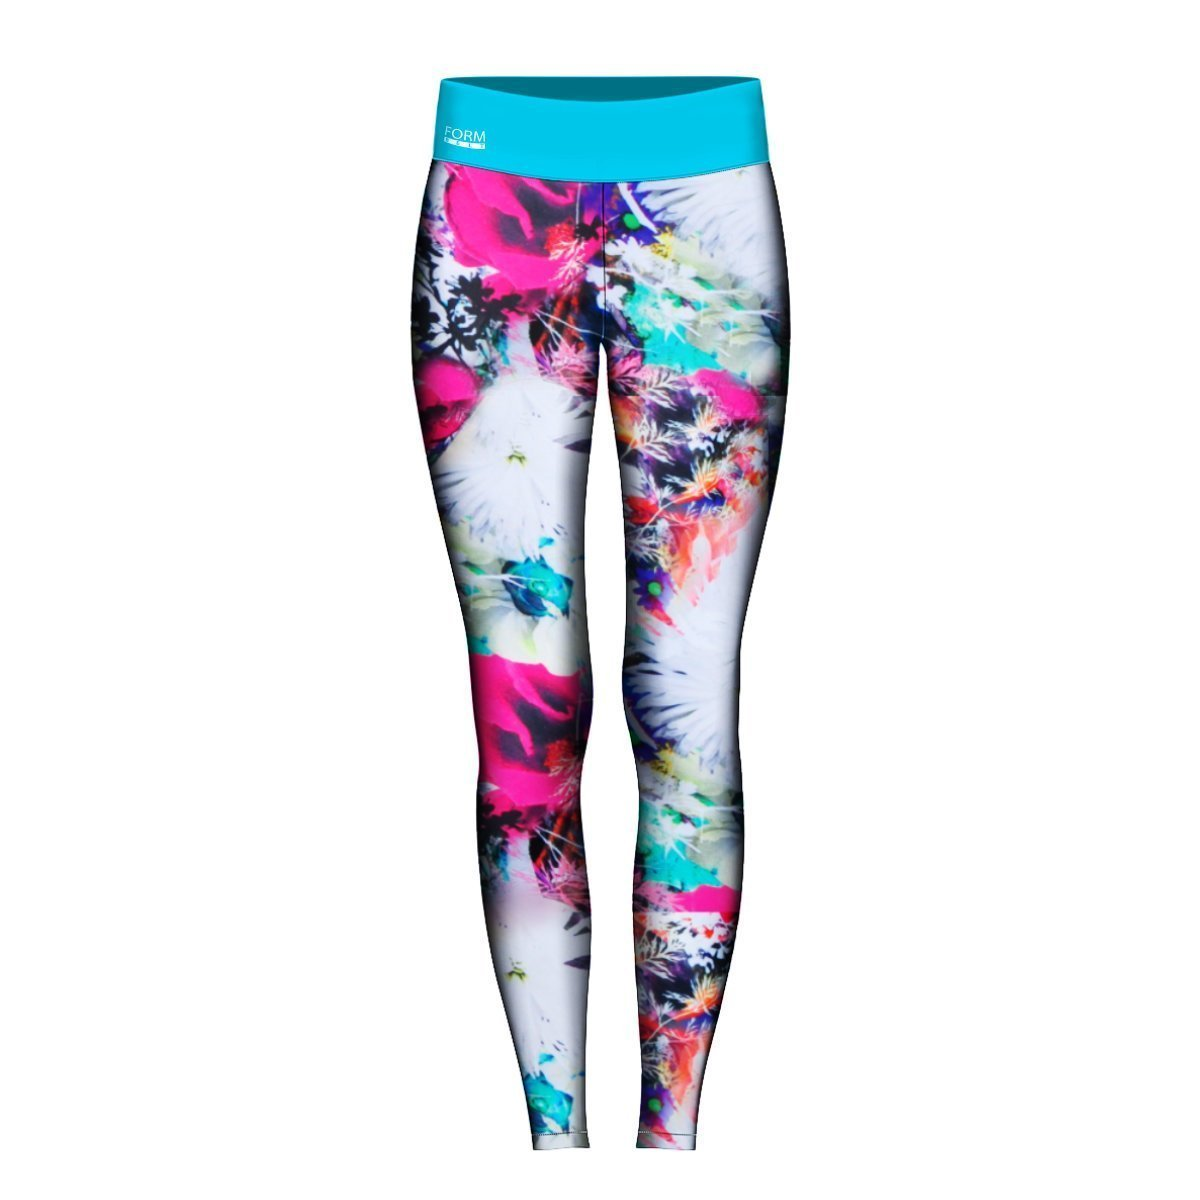 Fabletics offers affordable, high quality and stylish workout clothes for women & men. Shop yoga pants, leggings, joggers, tops, tees and more for any fitness level. New outfits every month!